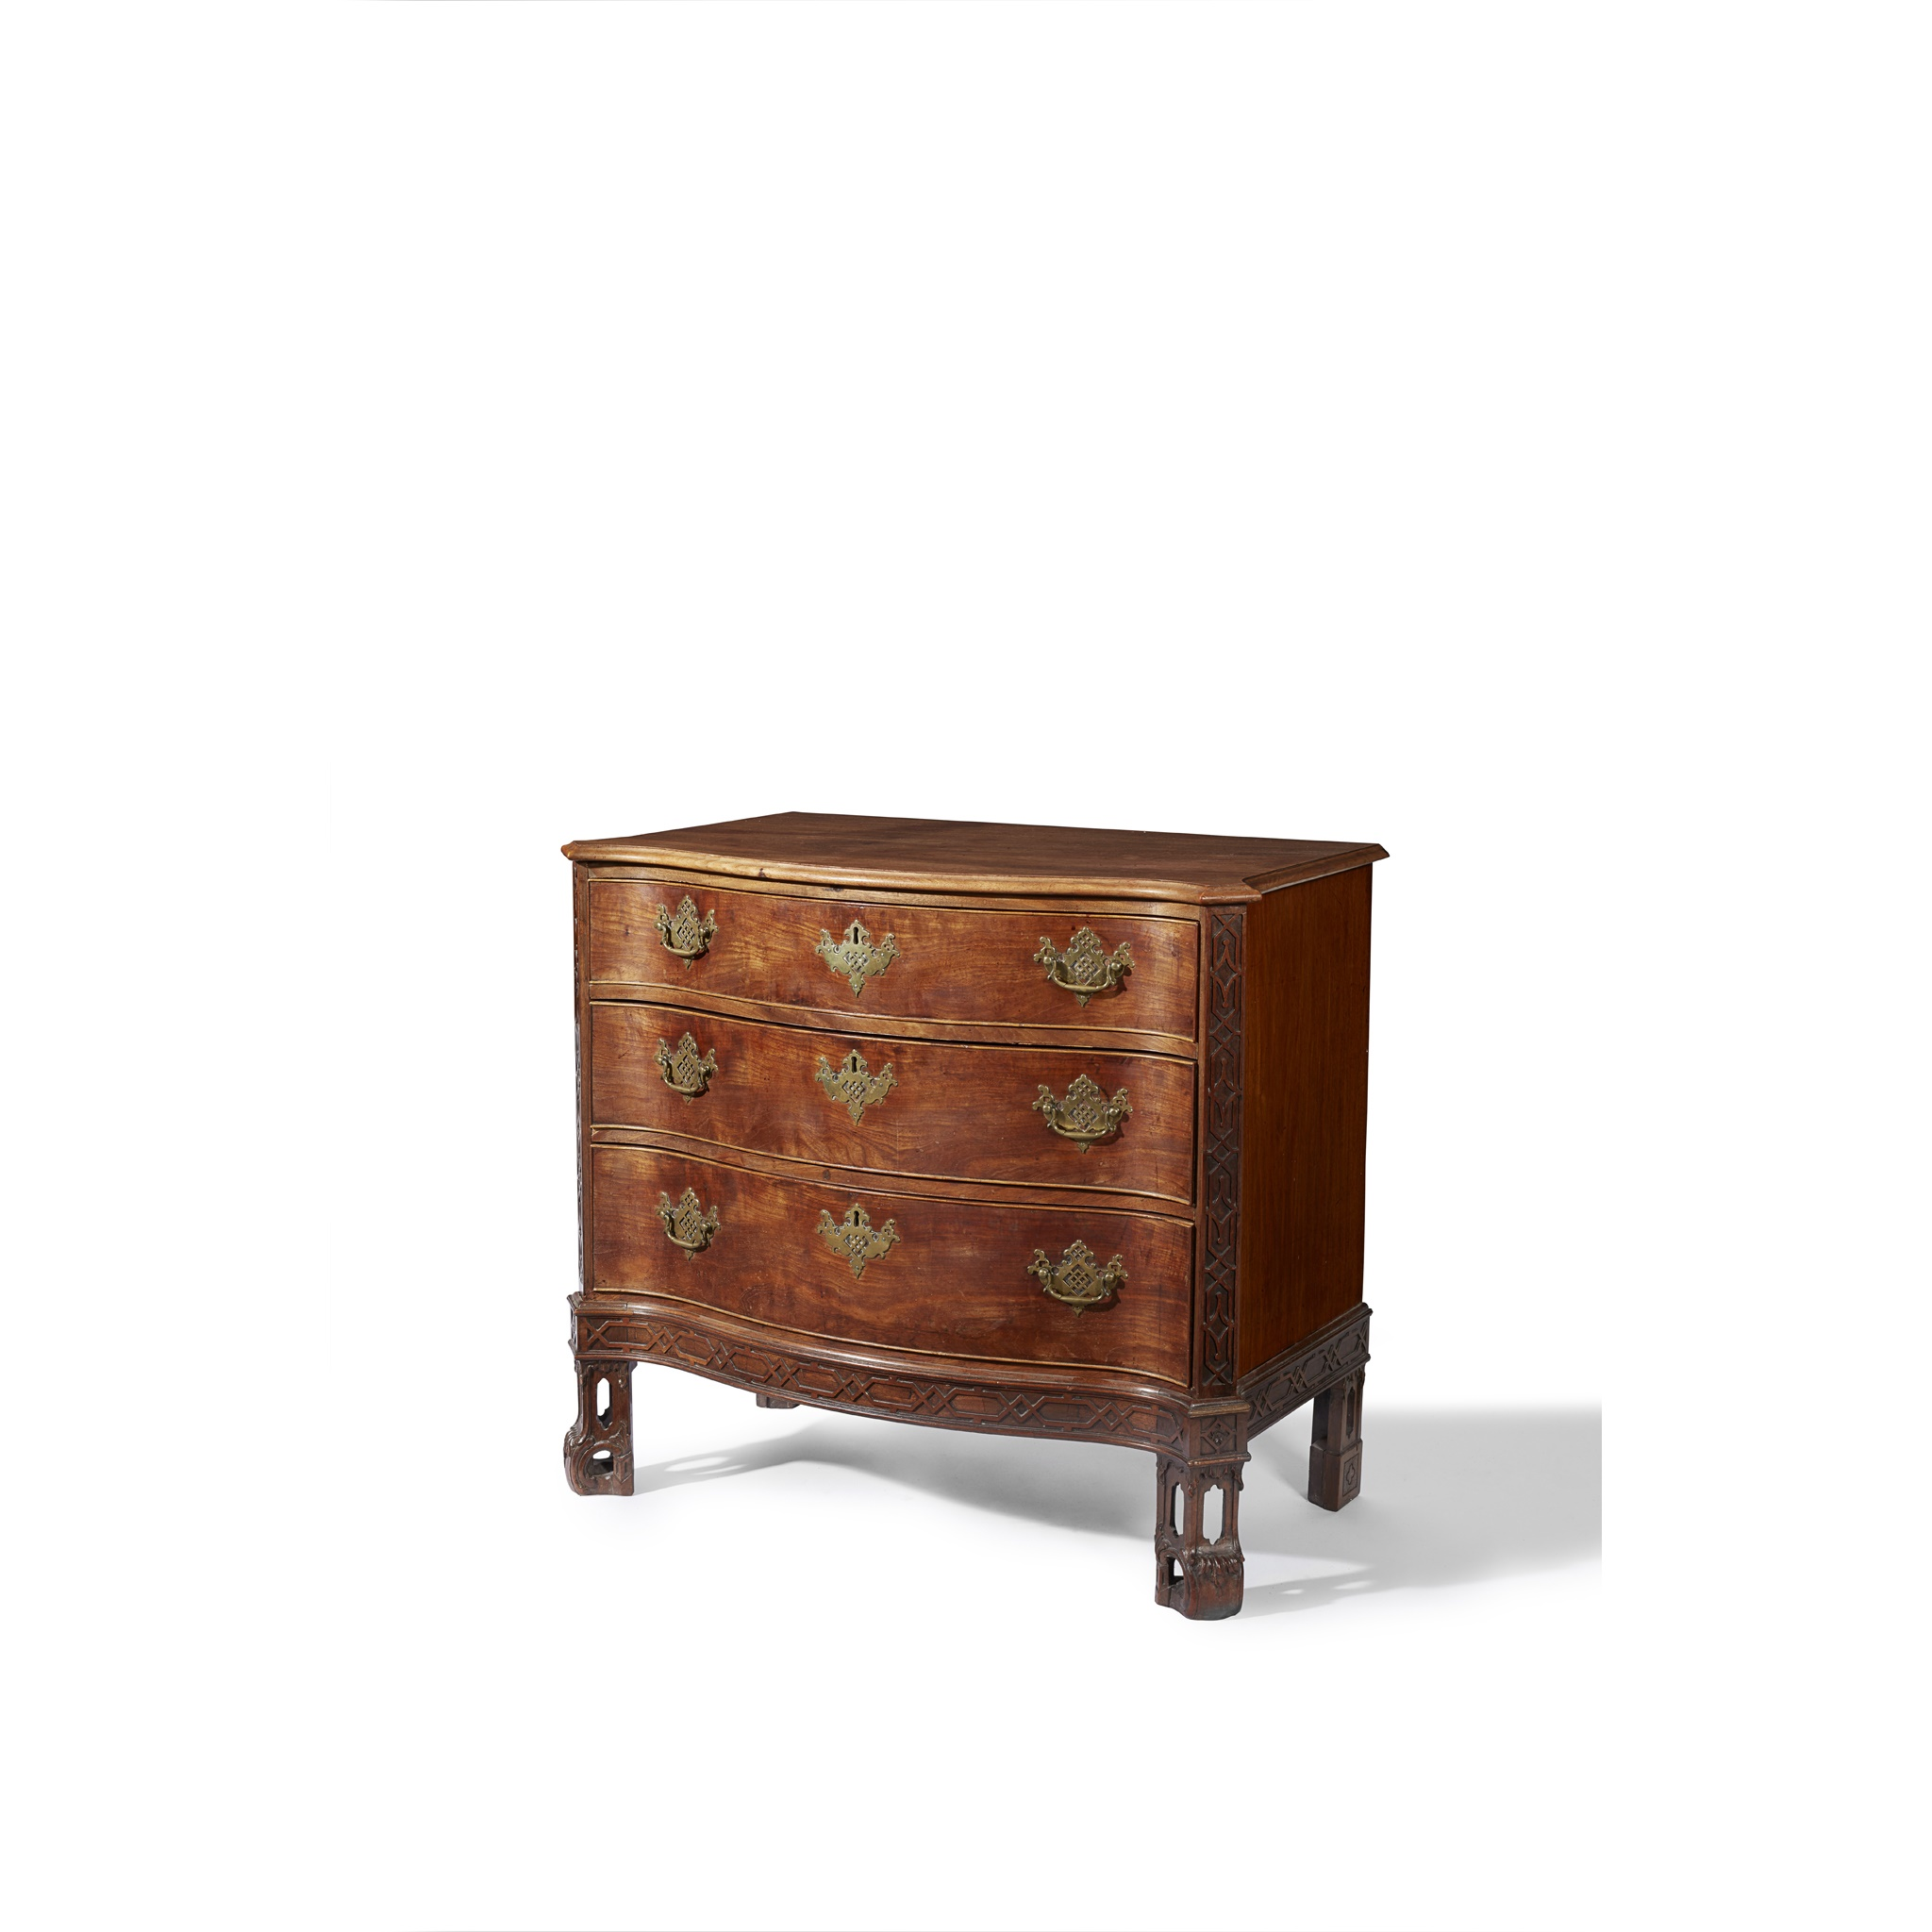 GEORGE III SERPENTINE CHEST OF DRAWERS MID 18TH CENTURY AND LATER - Image 5 of 6